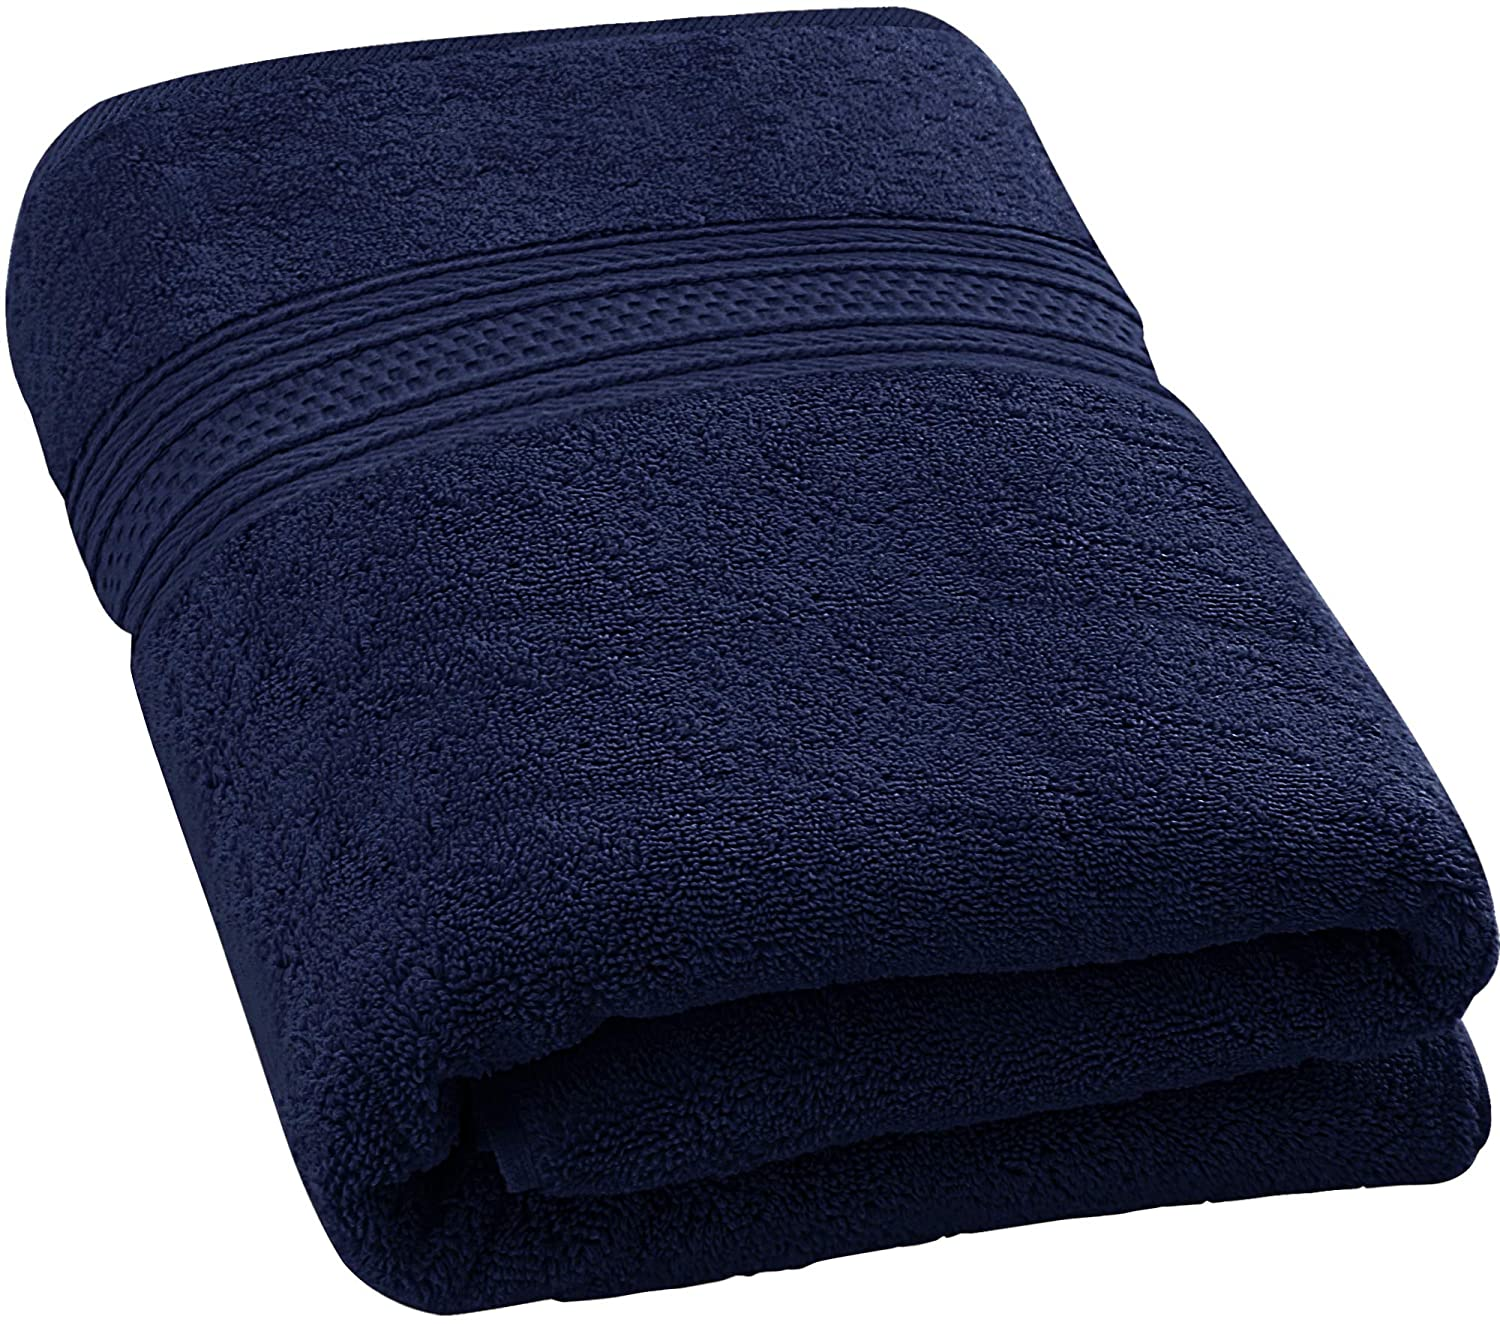 Utopia Towels 700 GSM Premium Cotton Extra Large Bath Towel (35 Inch by 70 Inch) Soft Luxury Bath Sheet, Grey UT0485